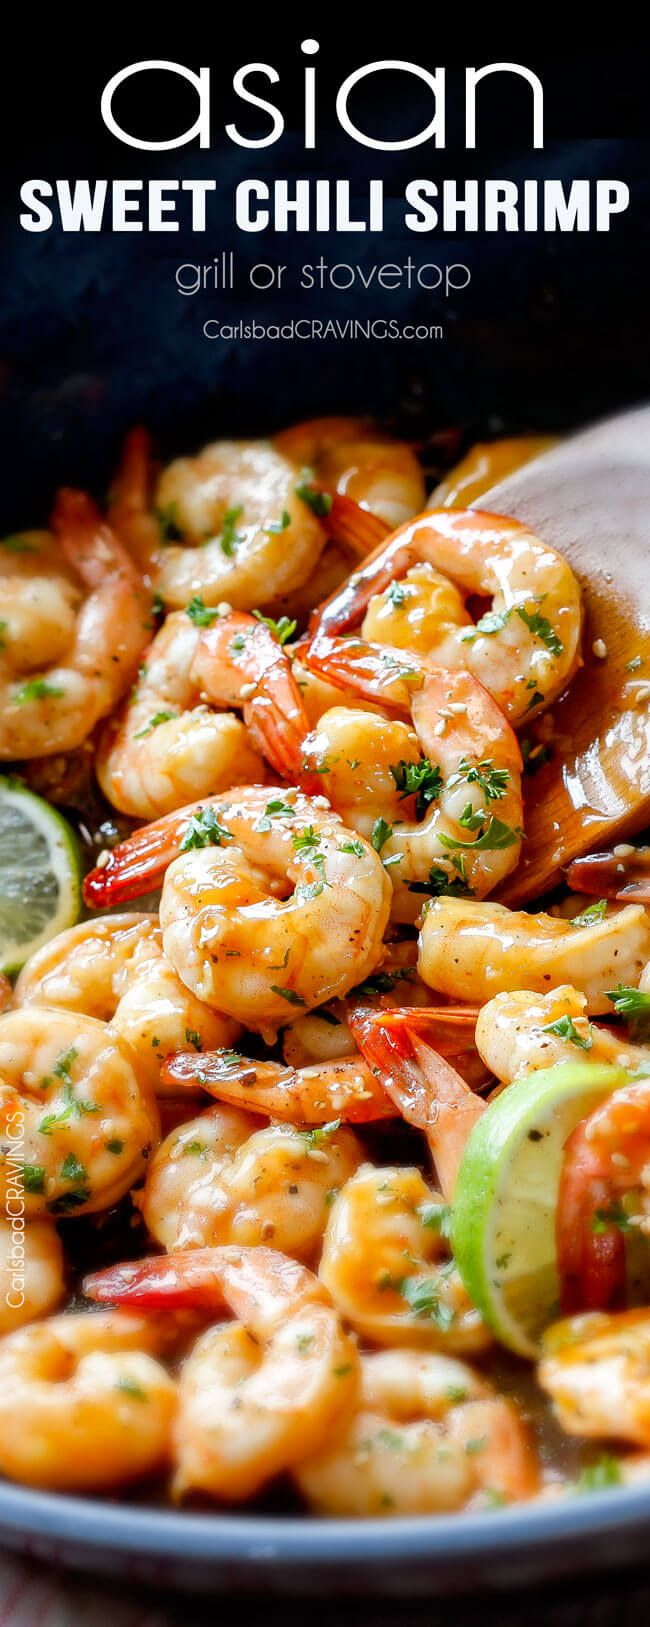 Best 25 chinese shrimp recipes ideas on pinterest shrimp and sweet chili shrimp grill or stovetop carlsbad cravings easy grilled shrimp recipeschinese forumfinder Gallery